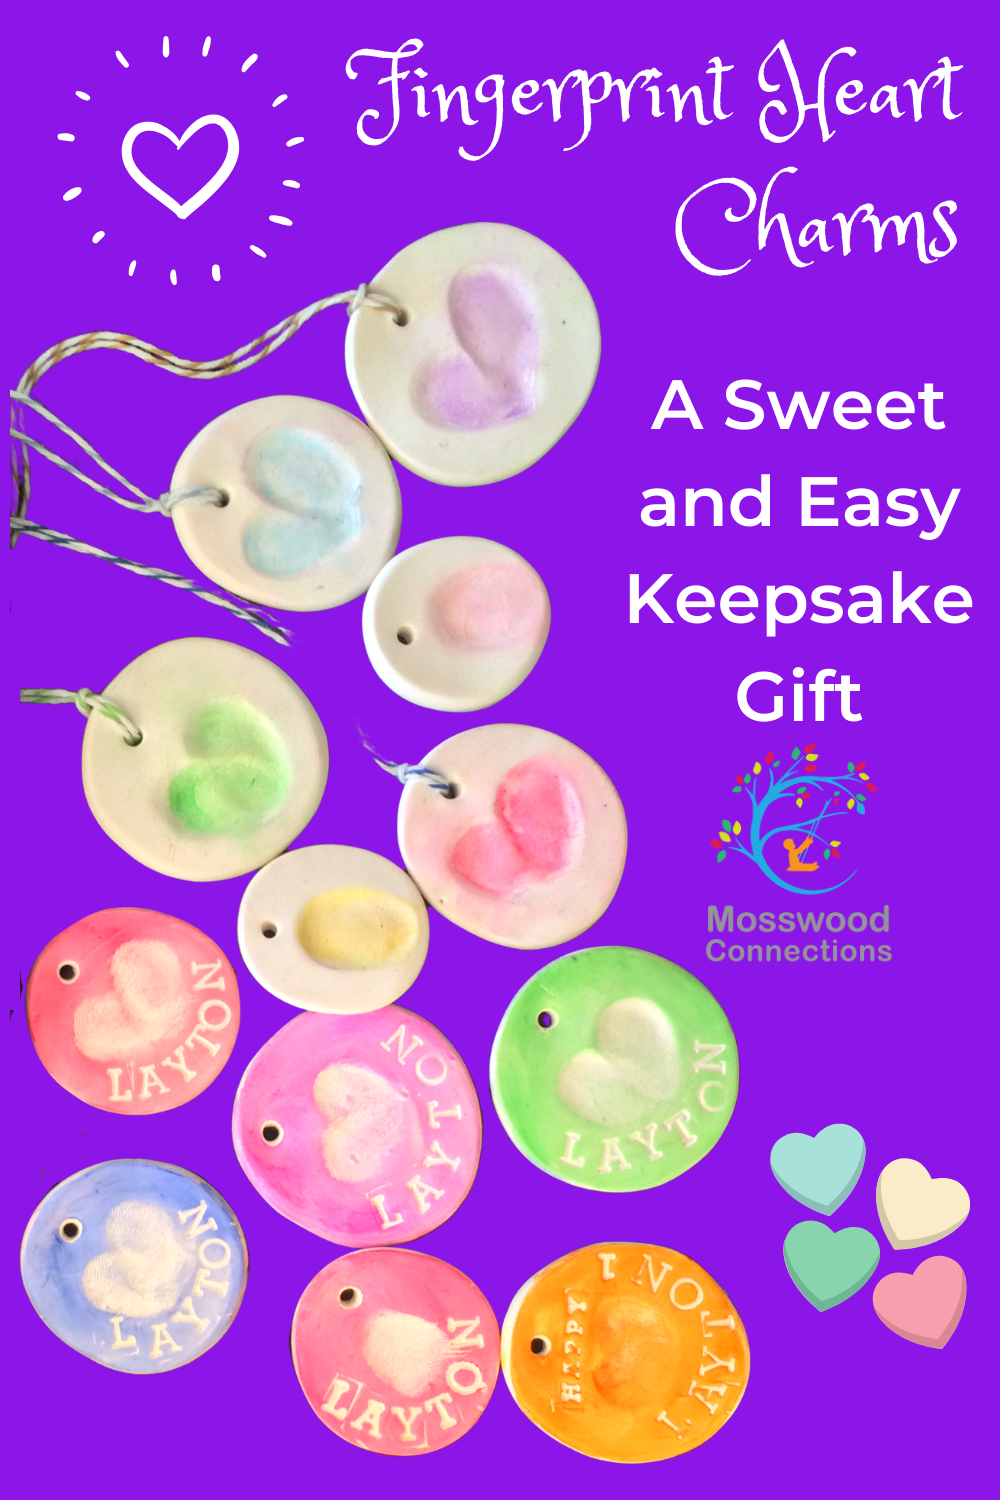 Fingerprint Charms Jewelry a Sweet Keepsake and Homemade Gift #mosswoodconnections #crafts #fingerprintart #homemade #kidmadegifts #Valentine'sDay #holidays